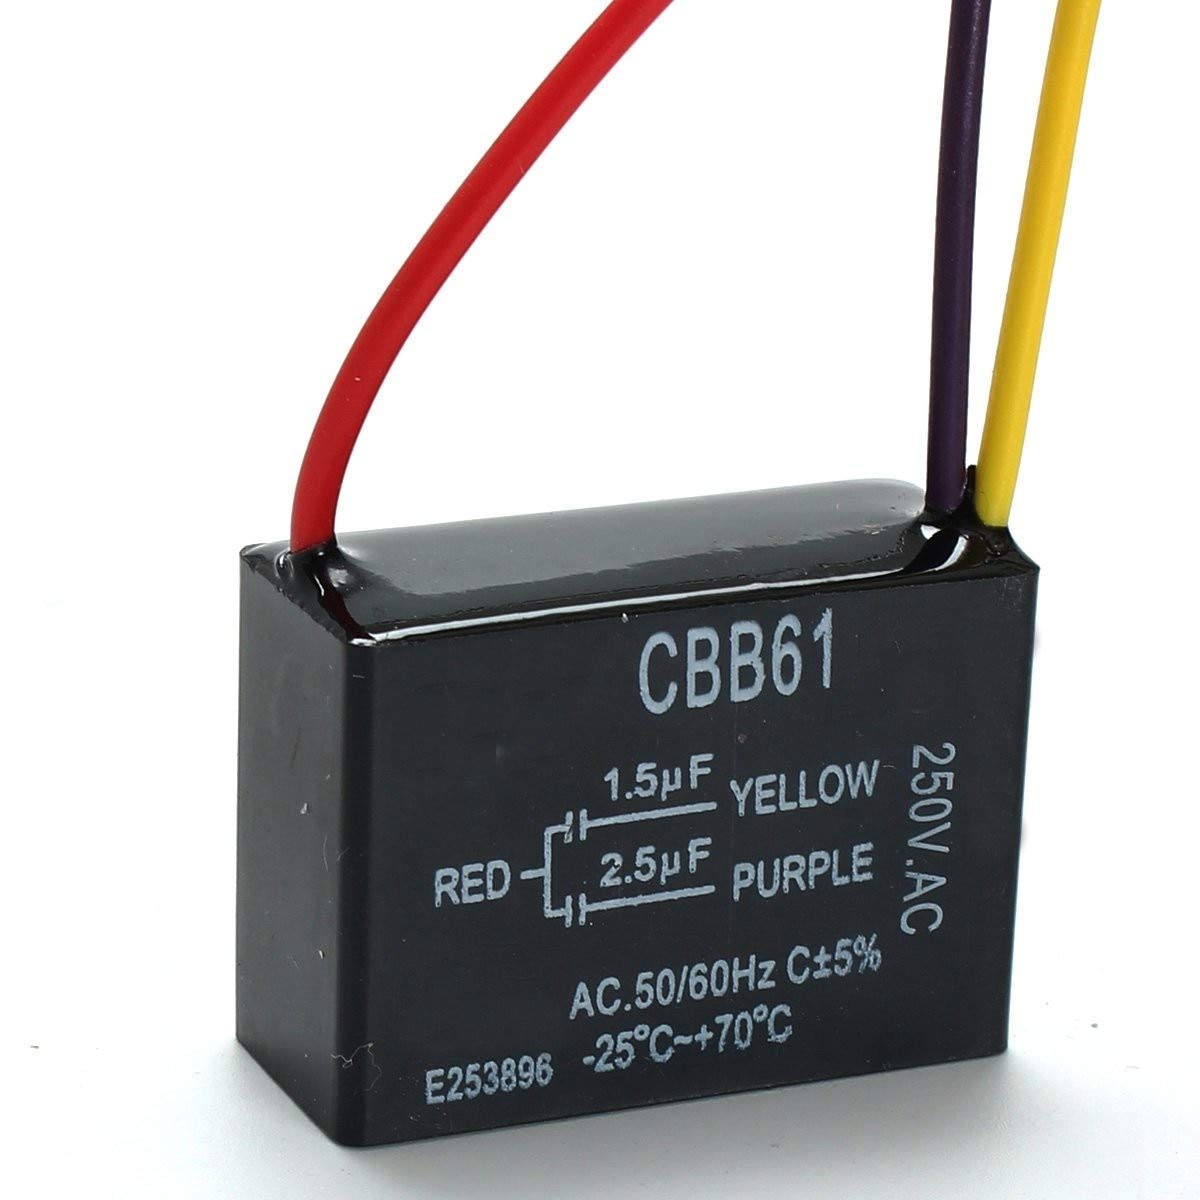 LOCHI 1pc Black Fan Capacitor CBB61 1.5uF+2.5uF 3 Wires AC 250V 50/60Hz Capacitor for Ceiling Fan